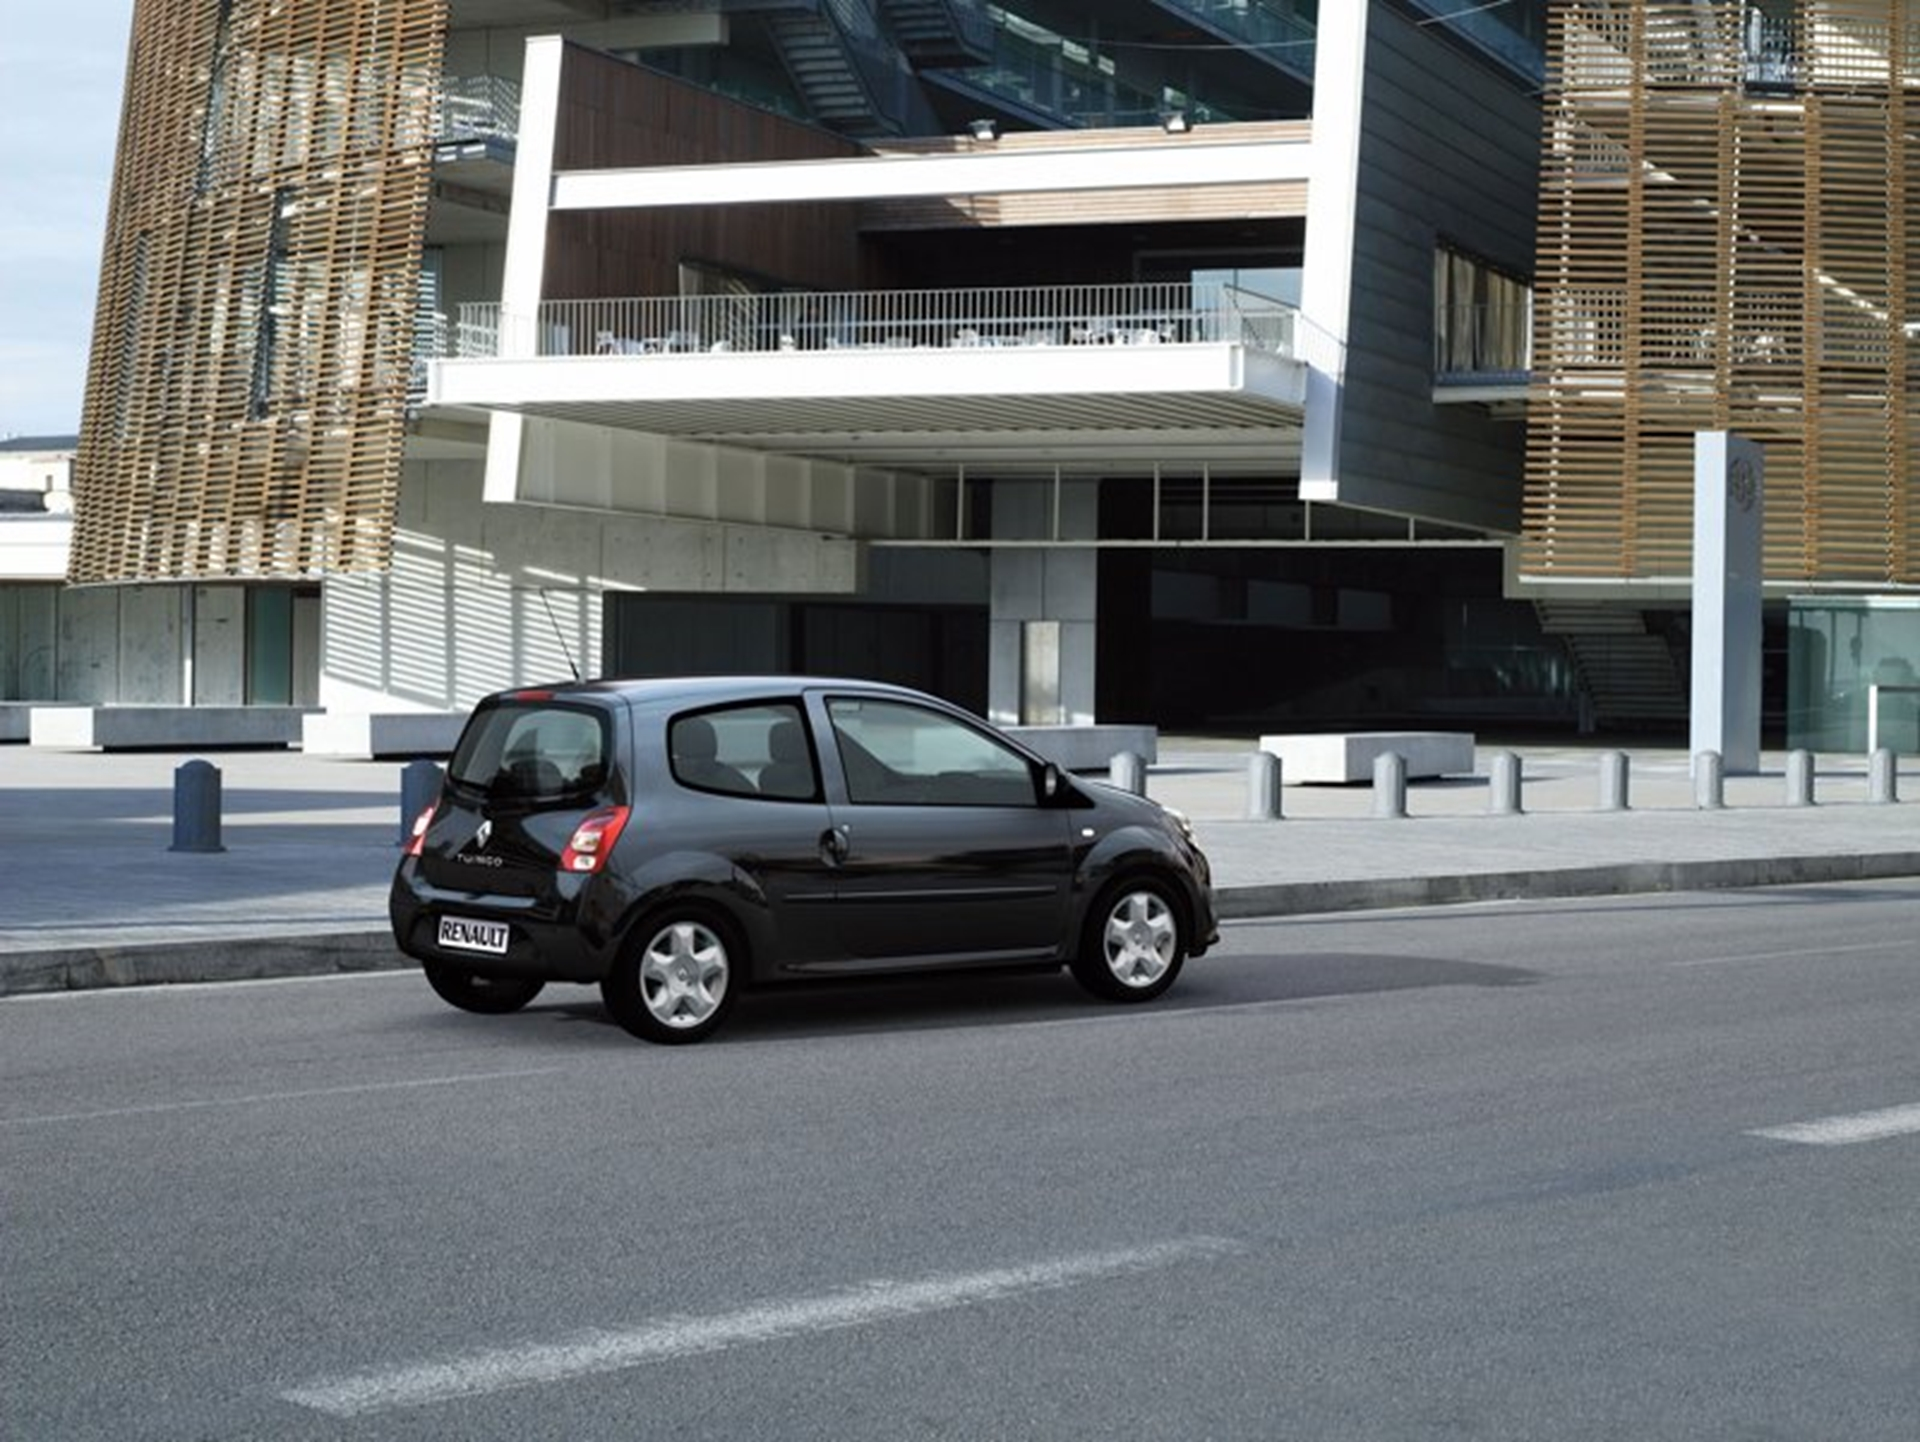 New Renault Twingo – Dynamic, Practical, Connected